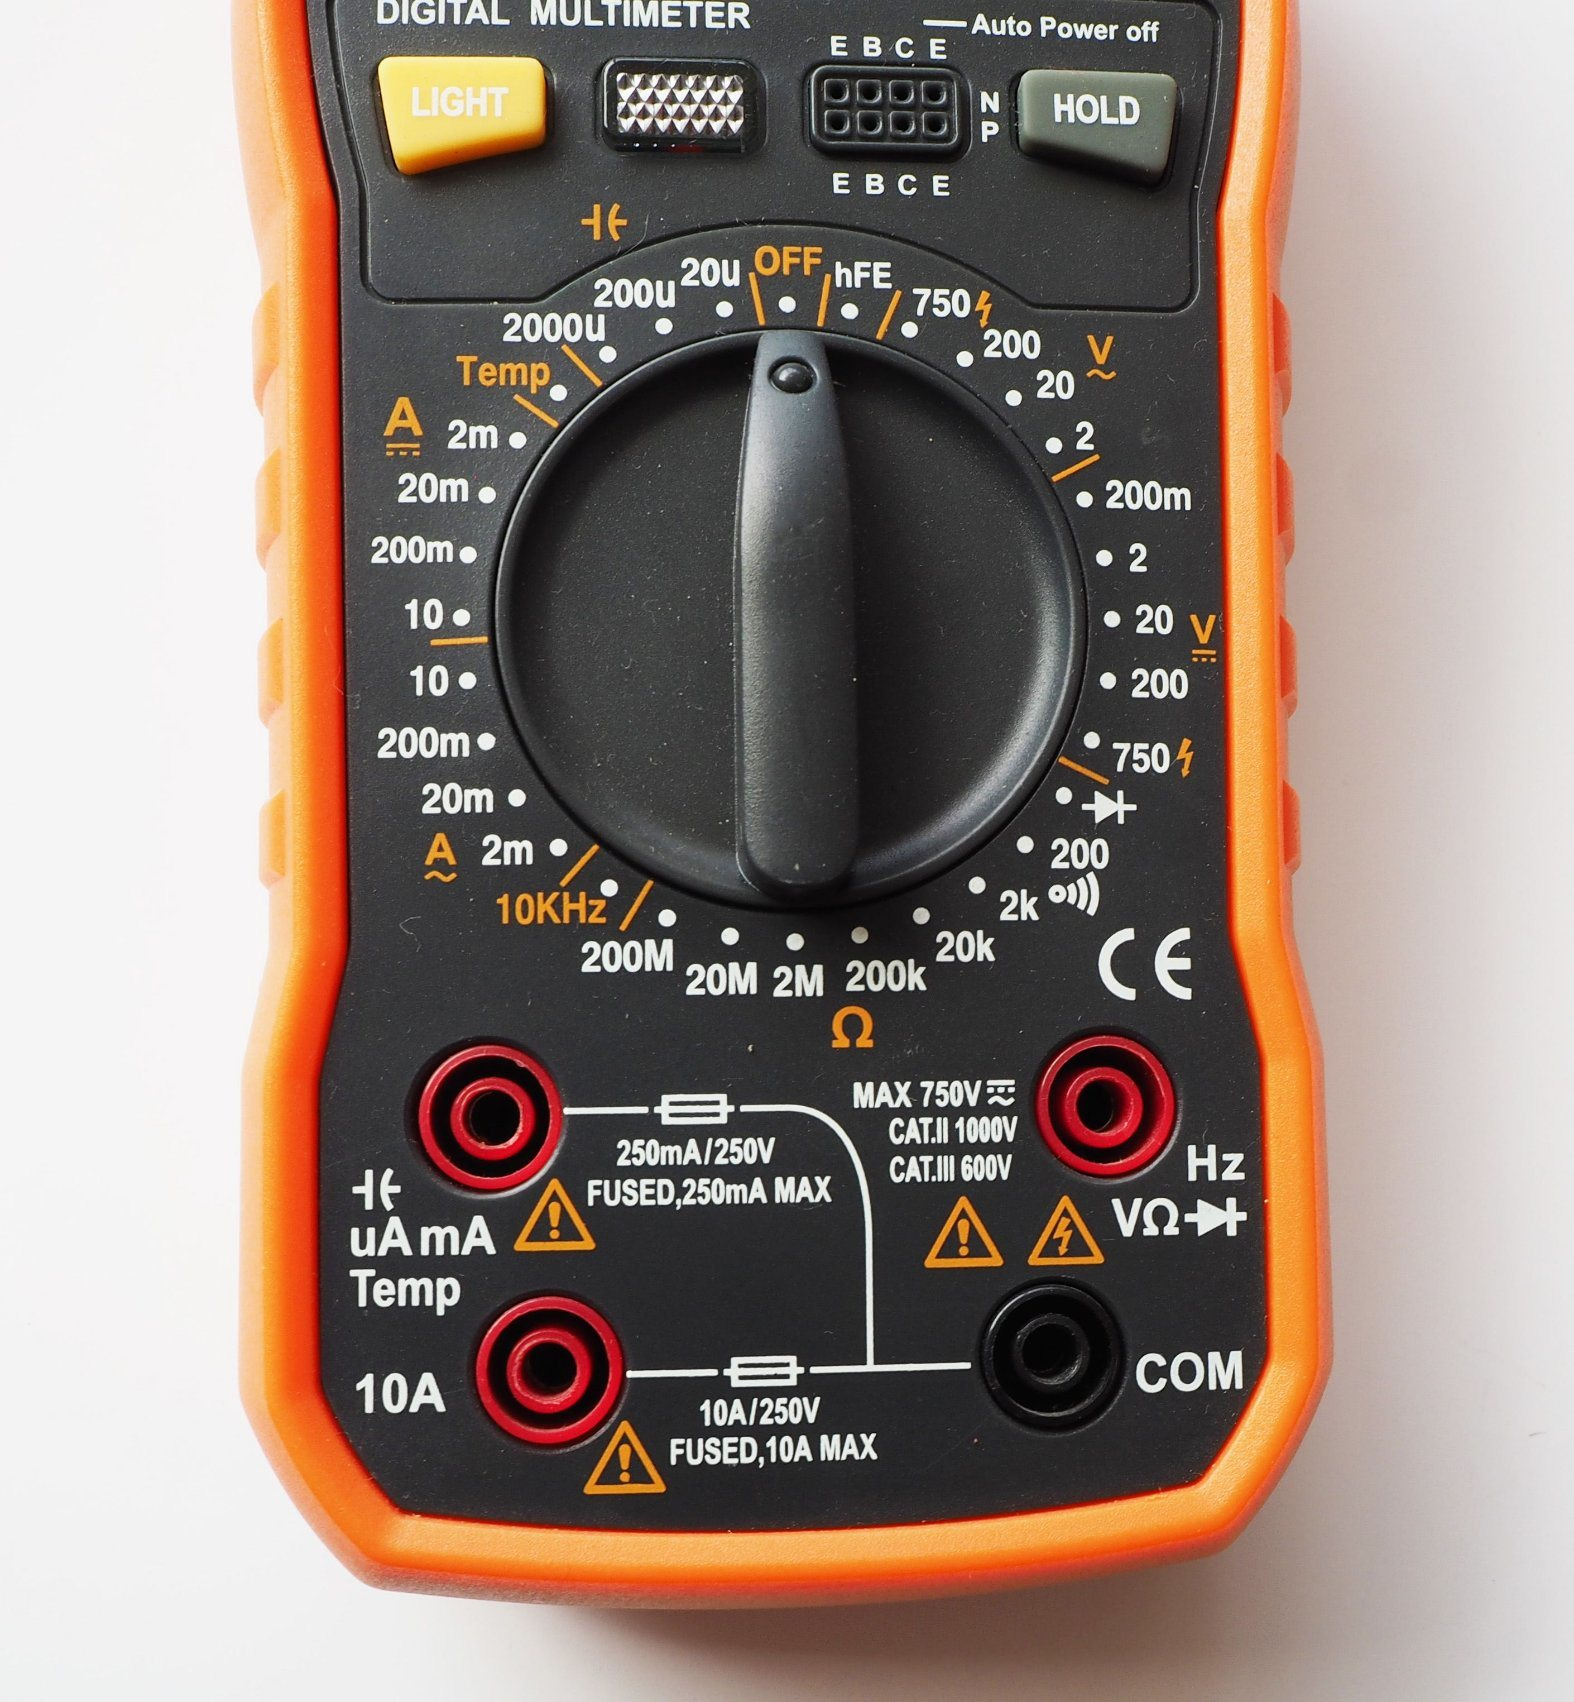 High Quality Electrial Digital Multimeter (KH64) with ISO Certified